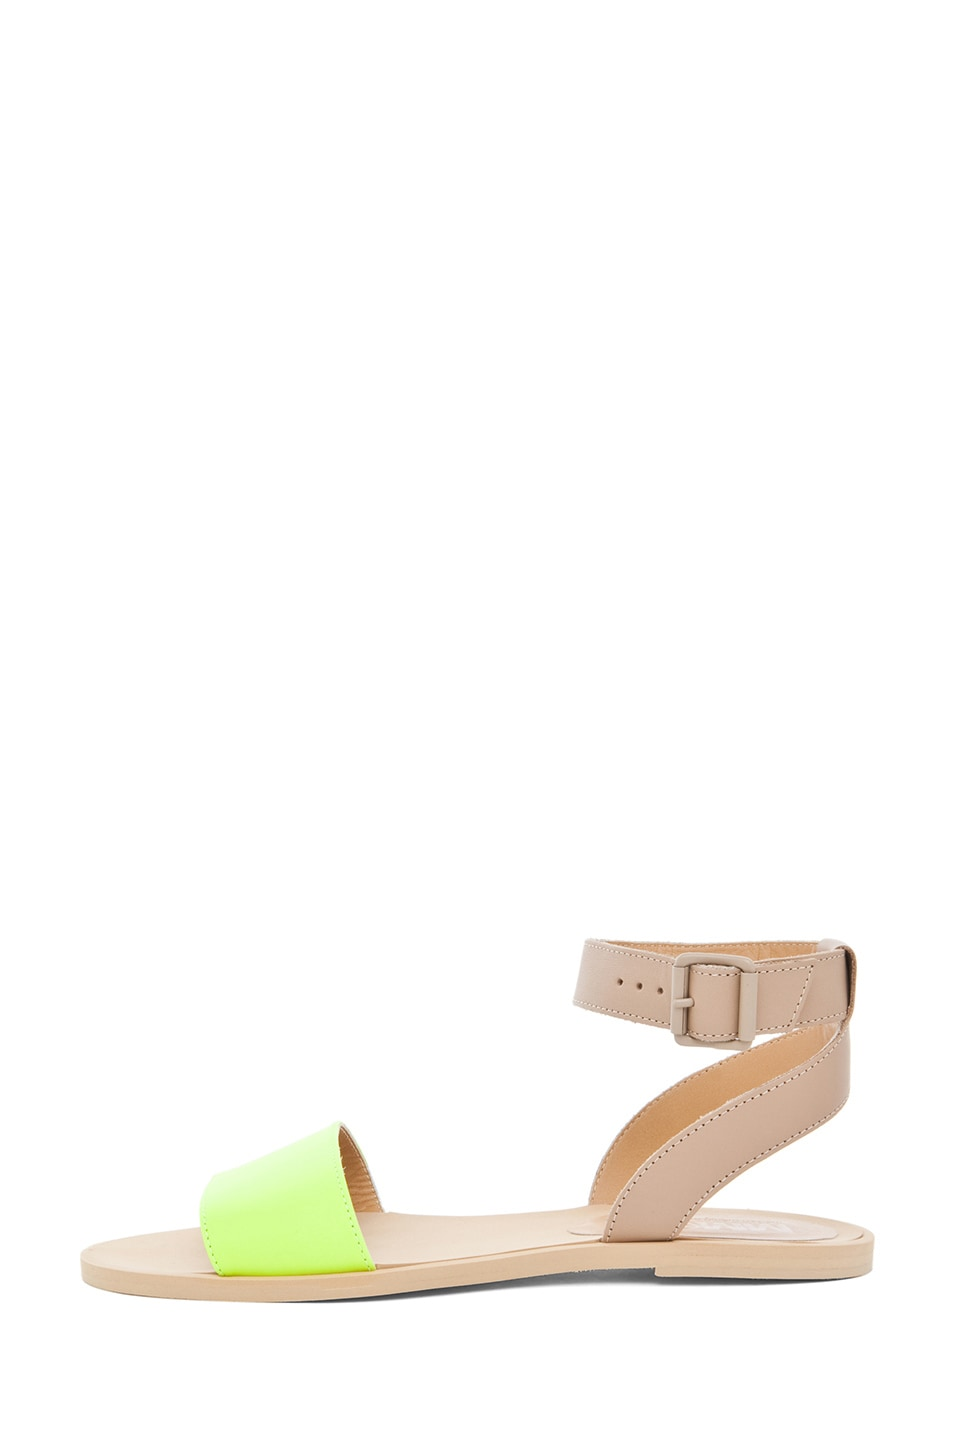 Image 1 of MM6 Maison Margiela Ankle Strap Sandal in Yellow & Beige